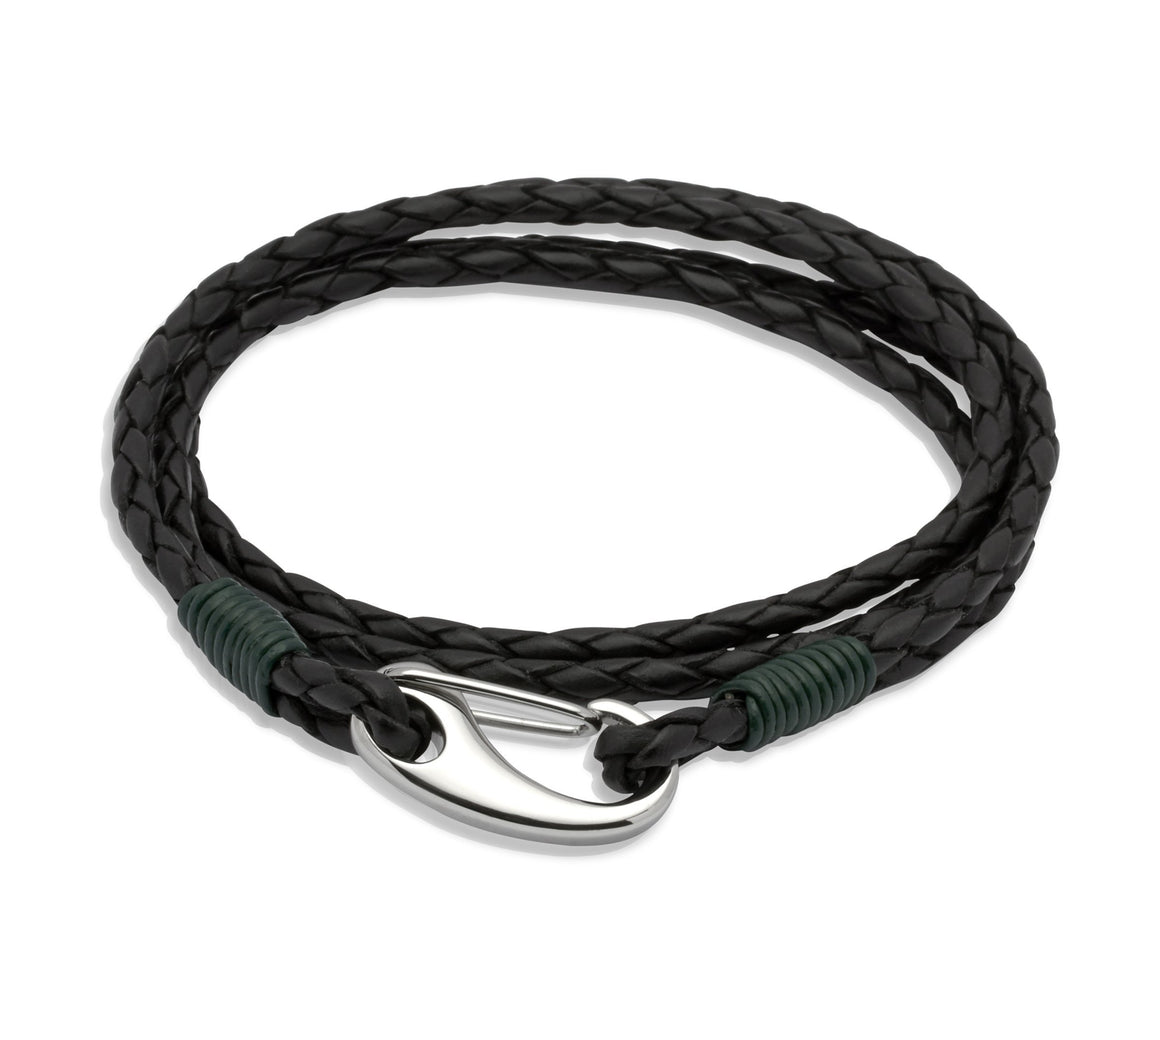 Mens-Double-Strand-Wrap-Around-Leather-Bracelet-Black-Dark-Green-Jools